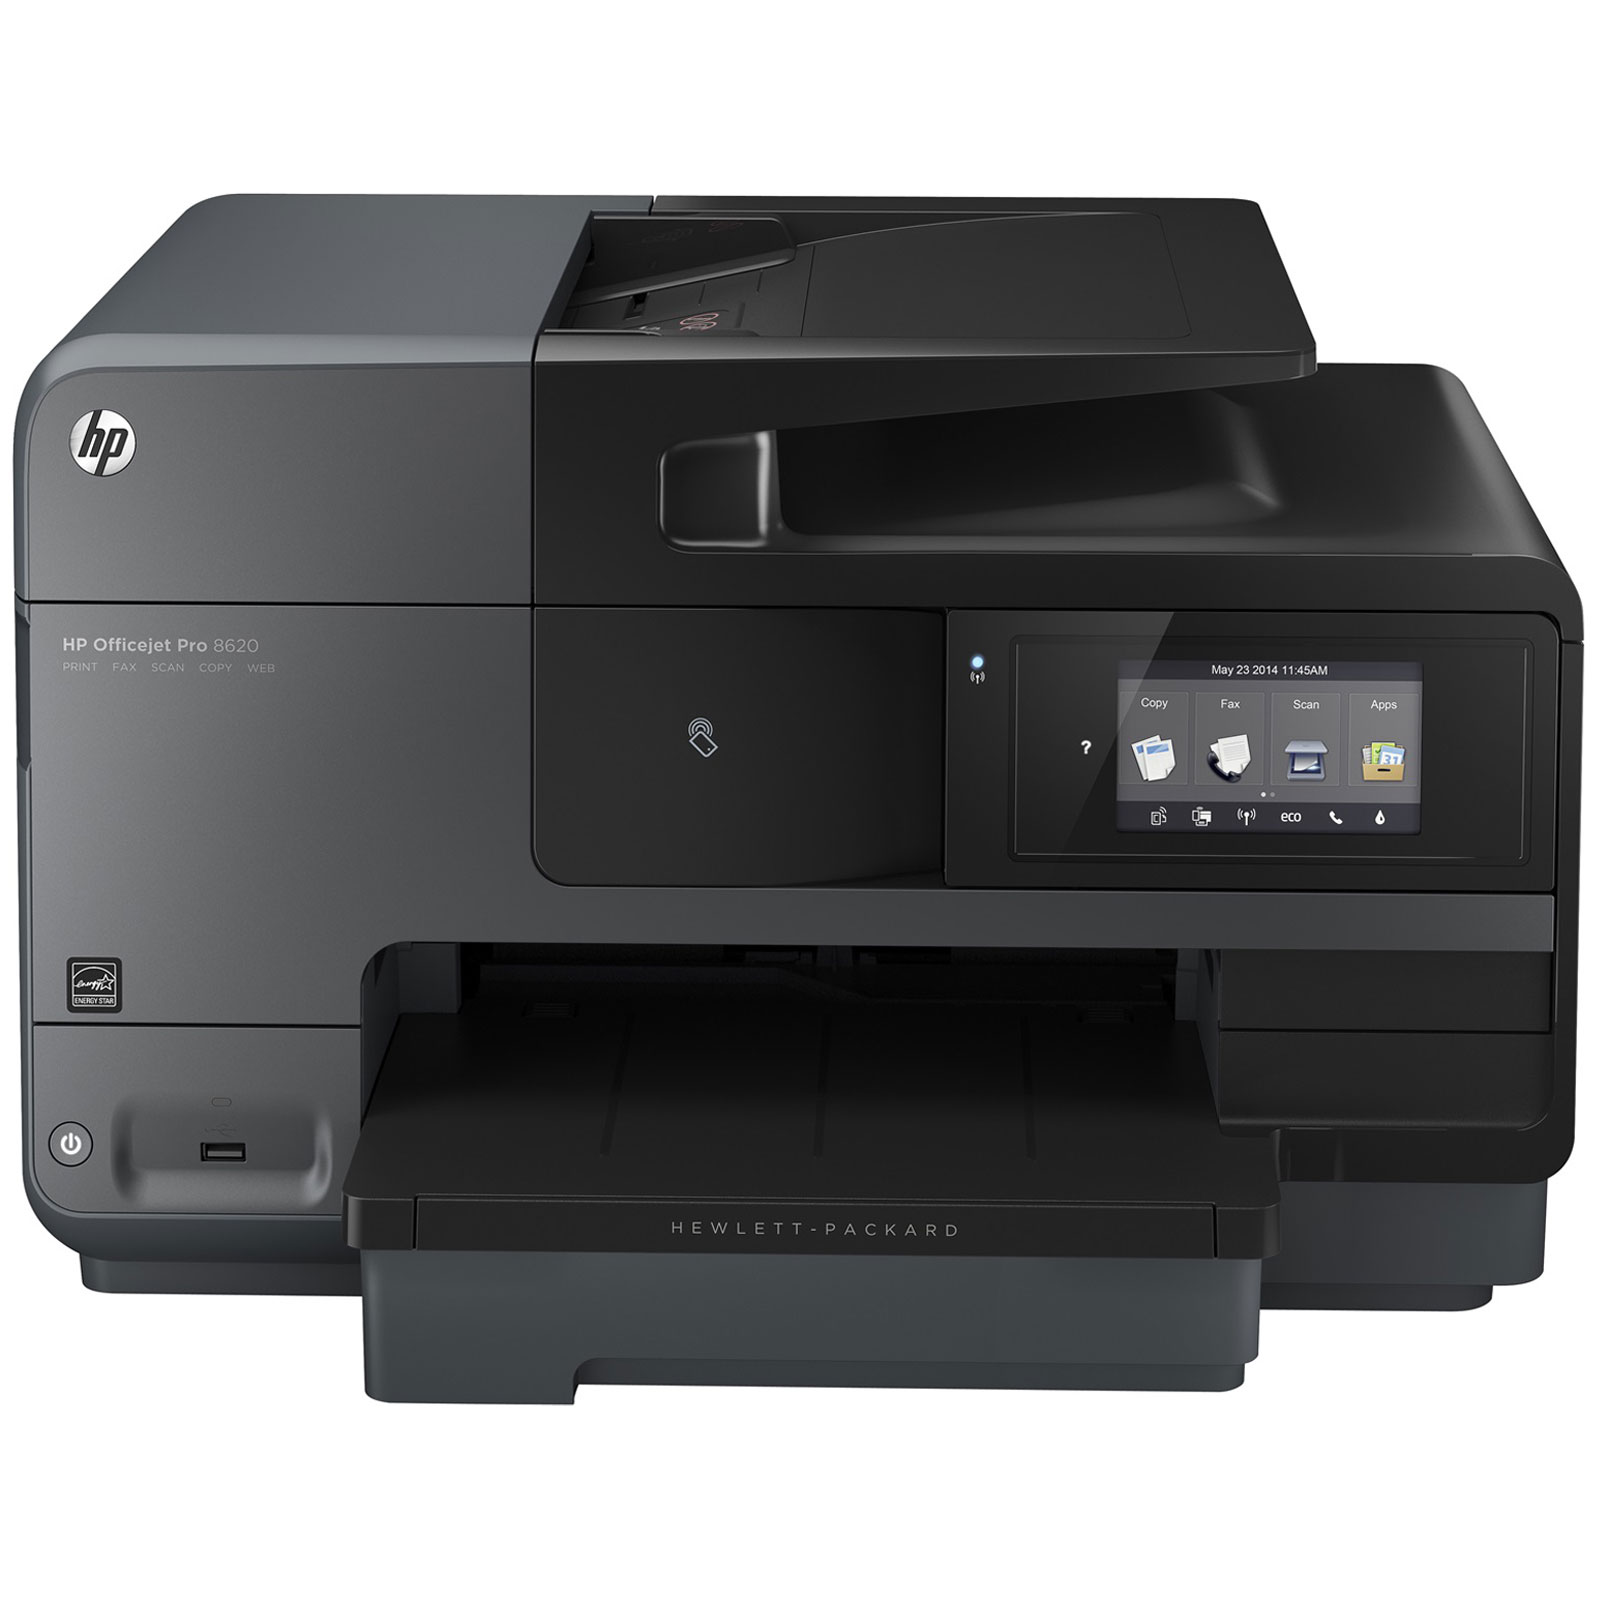 hp officejet pro 8620 imprimante multifonction hp sur. Black Bedroom Furniture Sets. Home Design Ideas